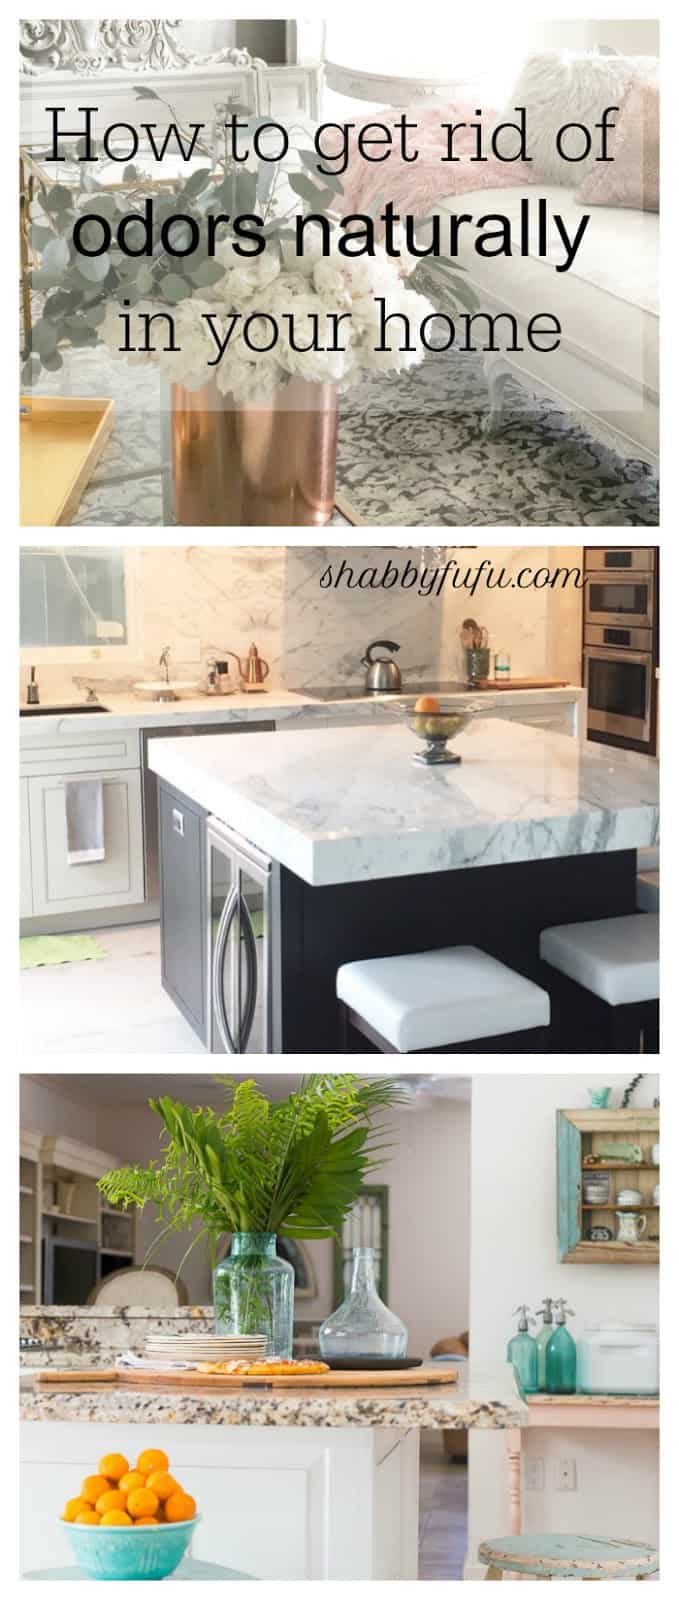 How to Get Rid of Odors Naturally In Your Home- shabbyfufu